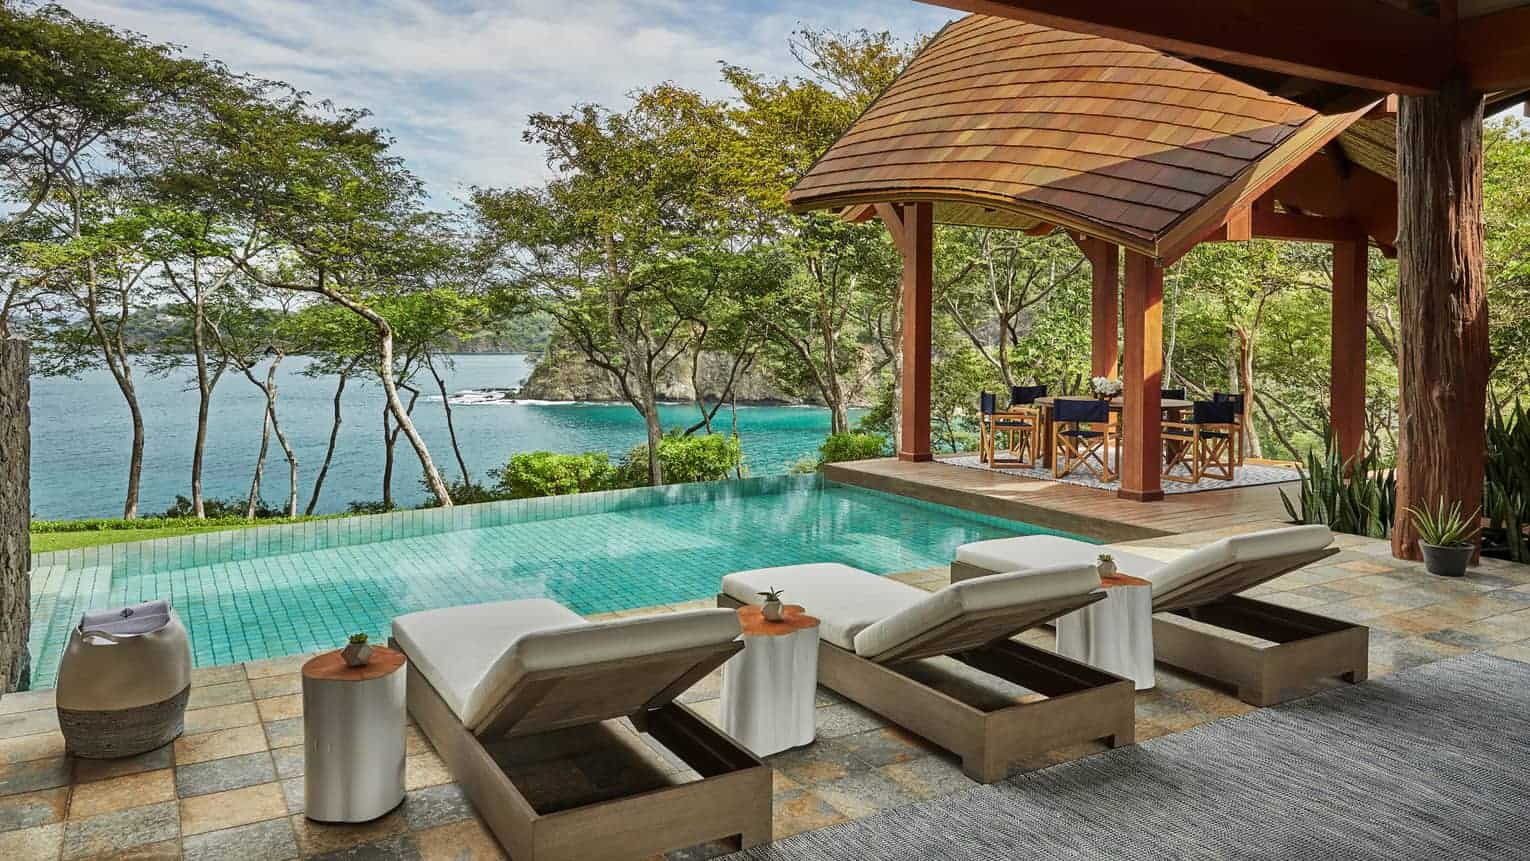 Wellness at the Four Seasons Costa Rica